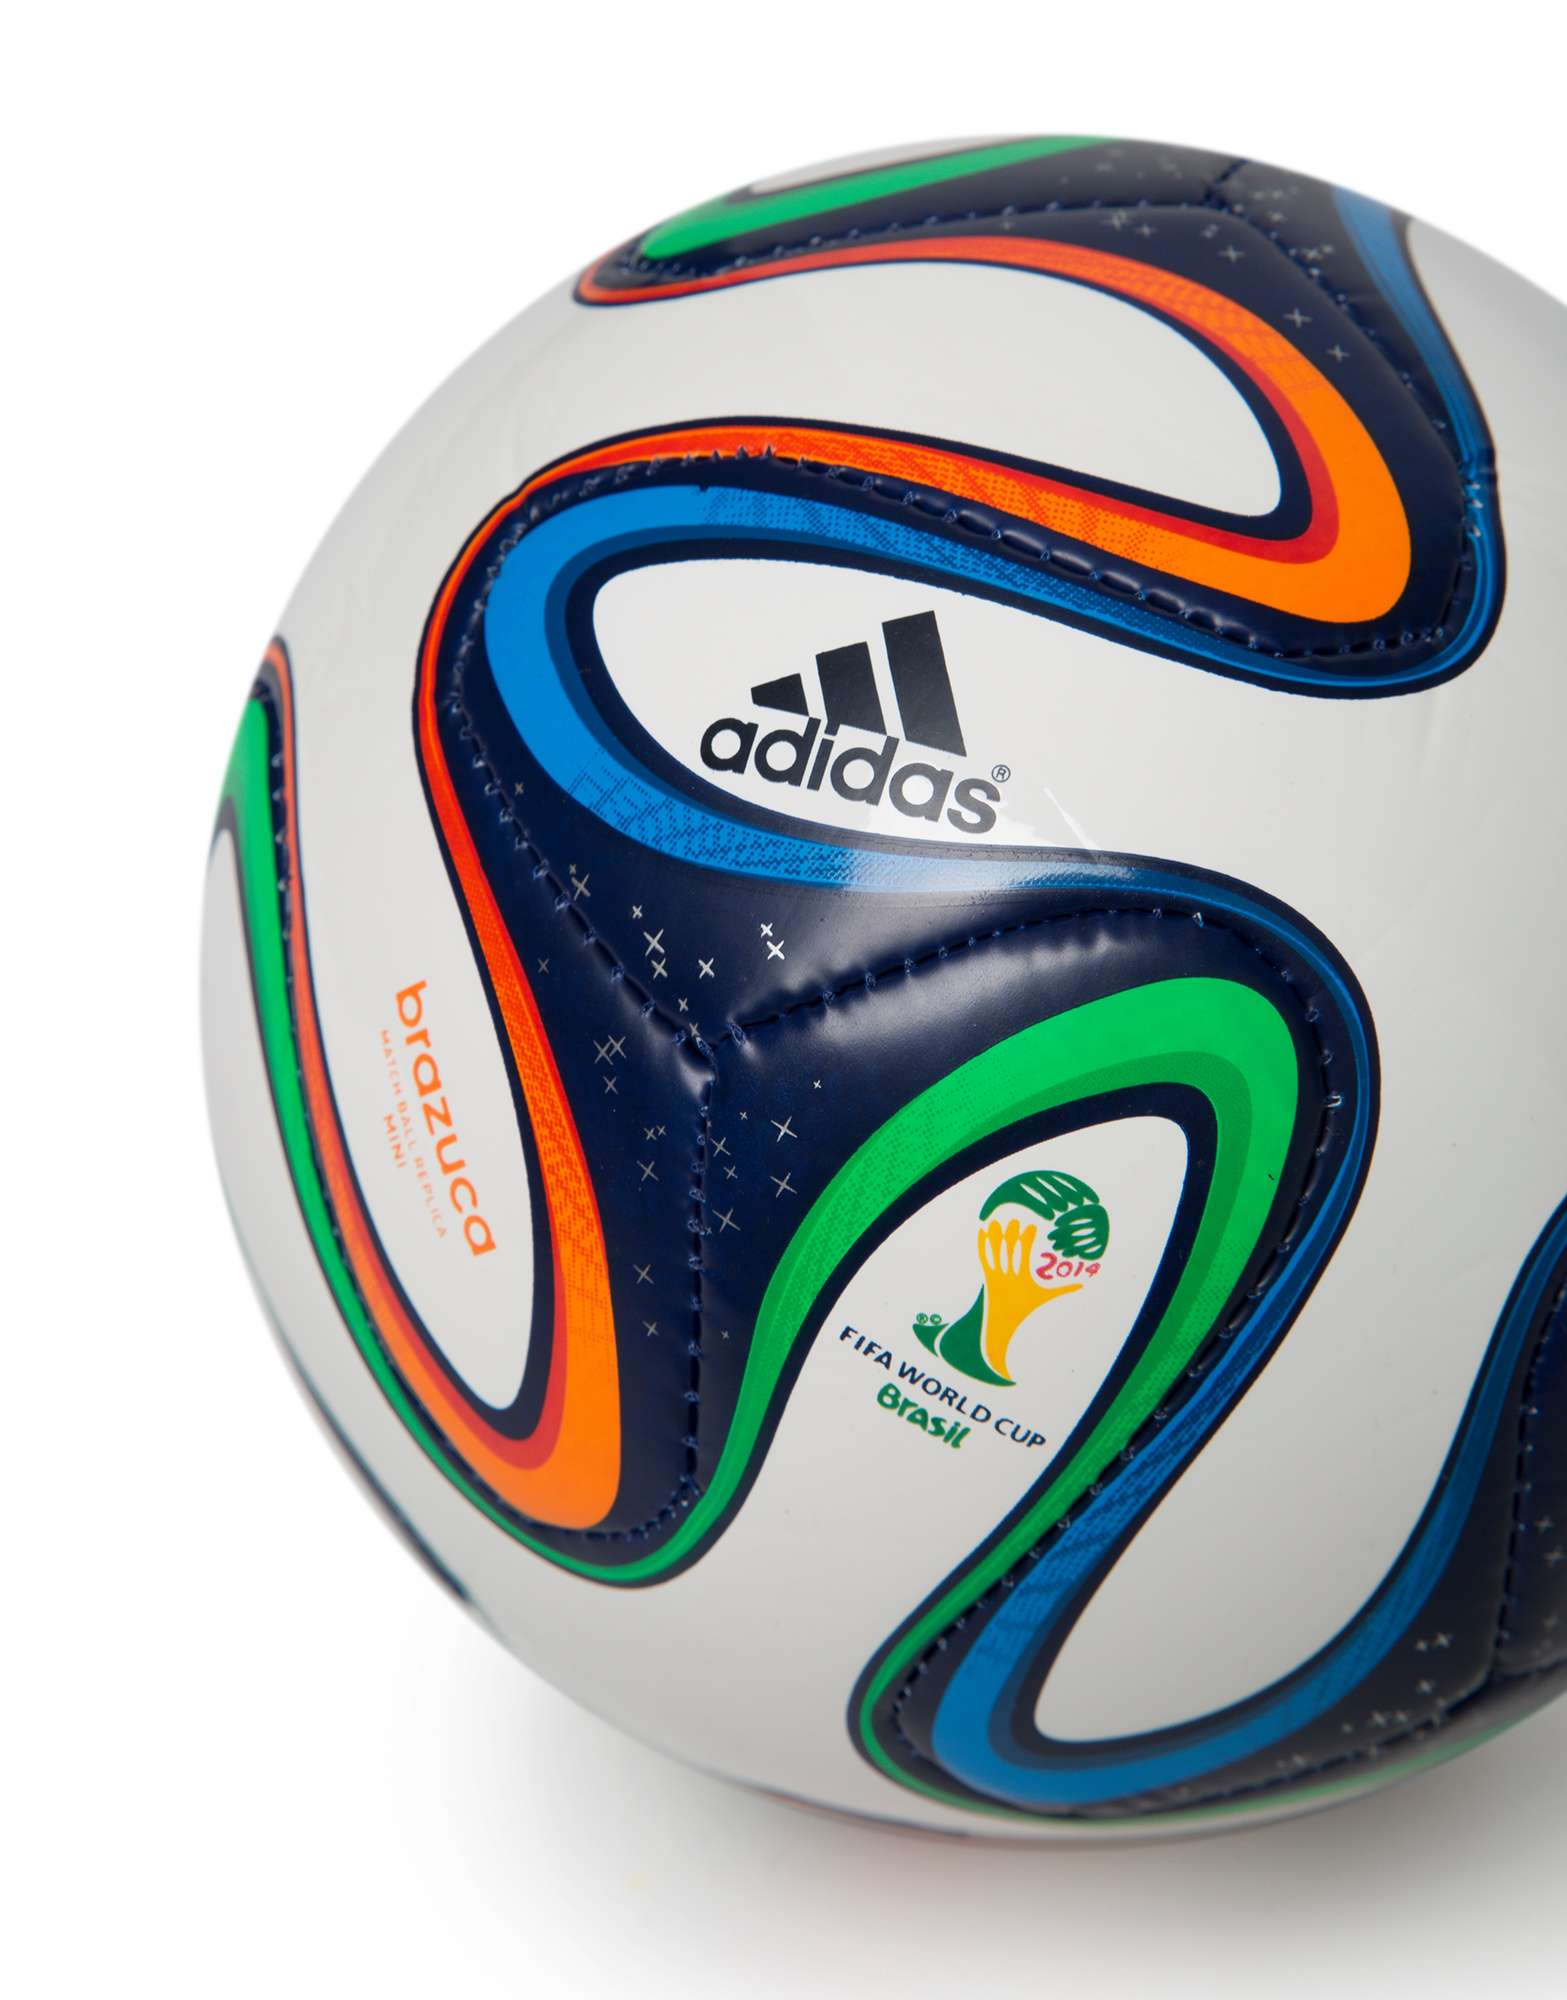 adidas Brazuca FIFA 2014 World Cup Mini Football